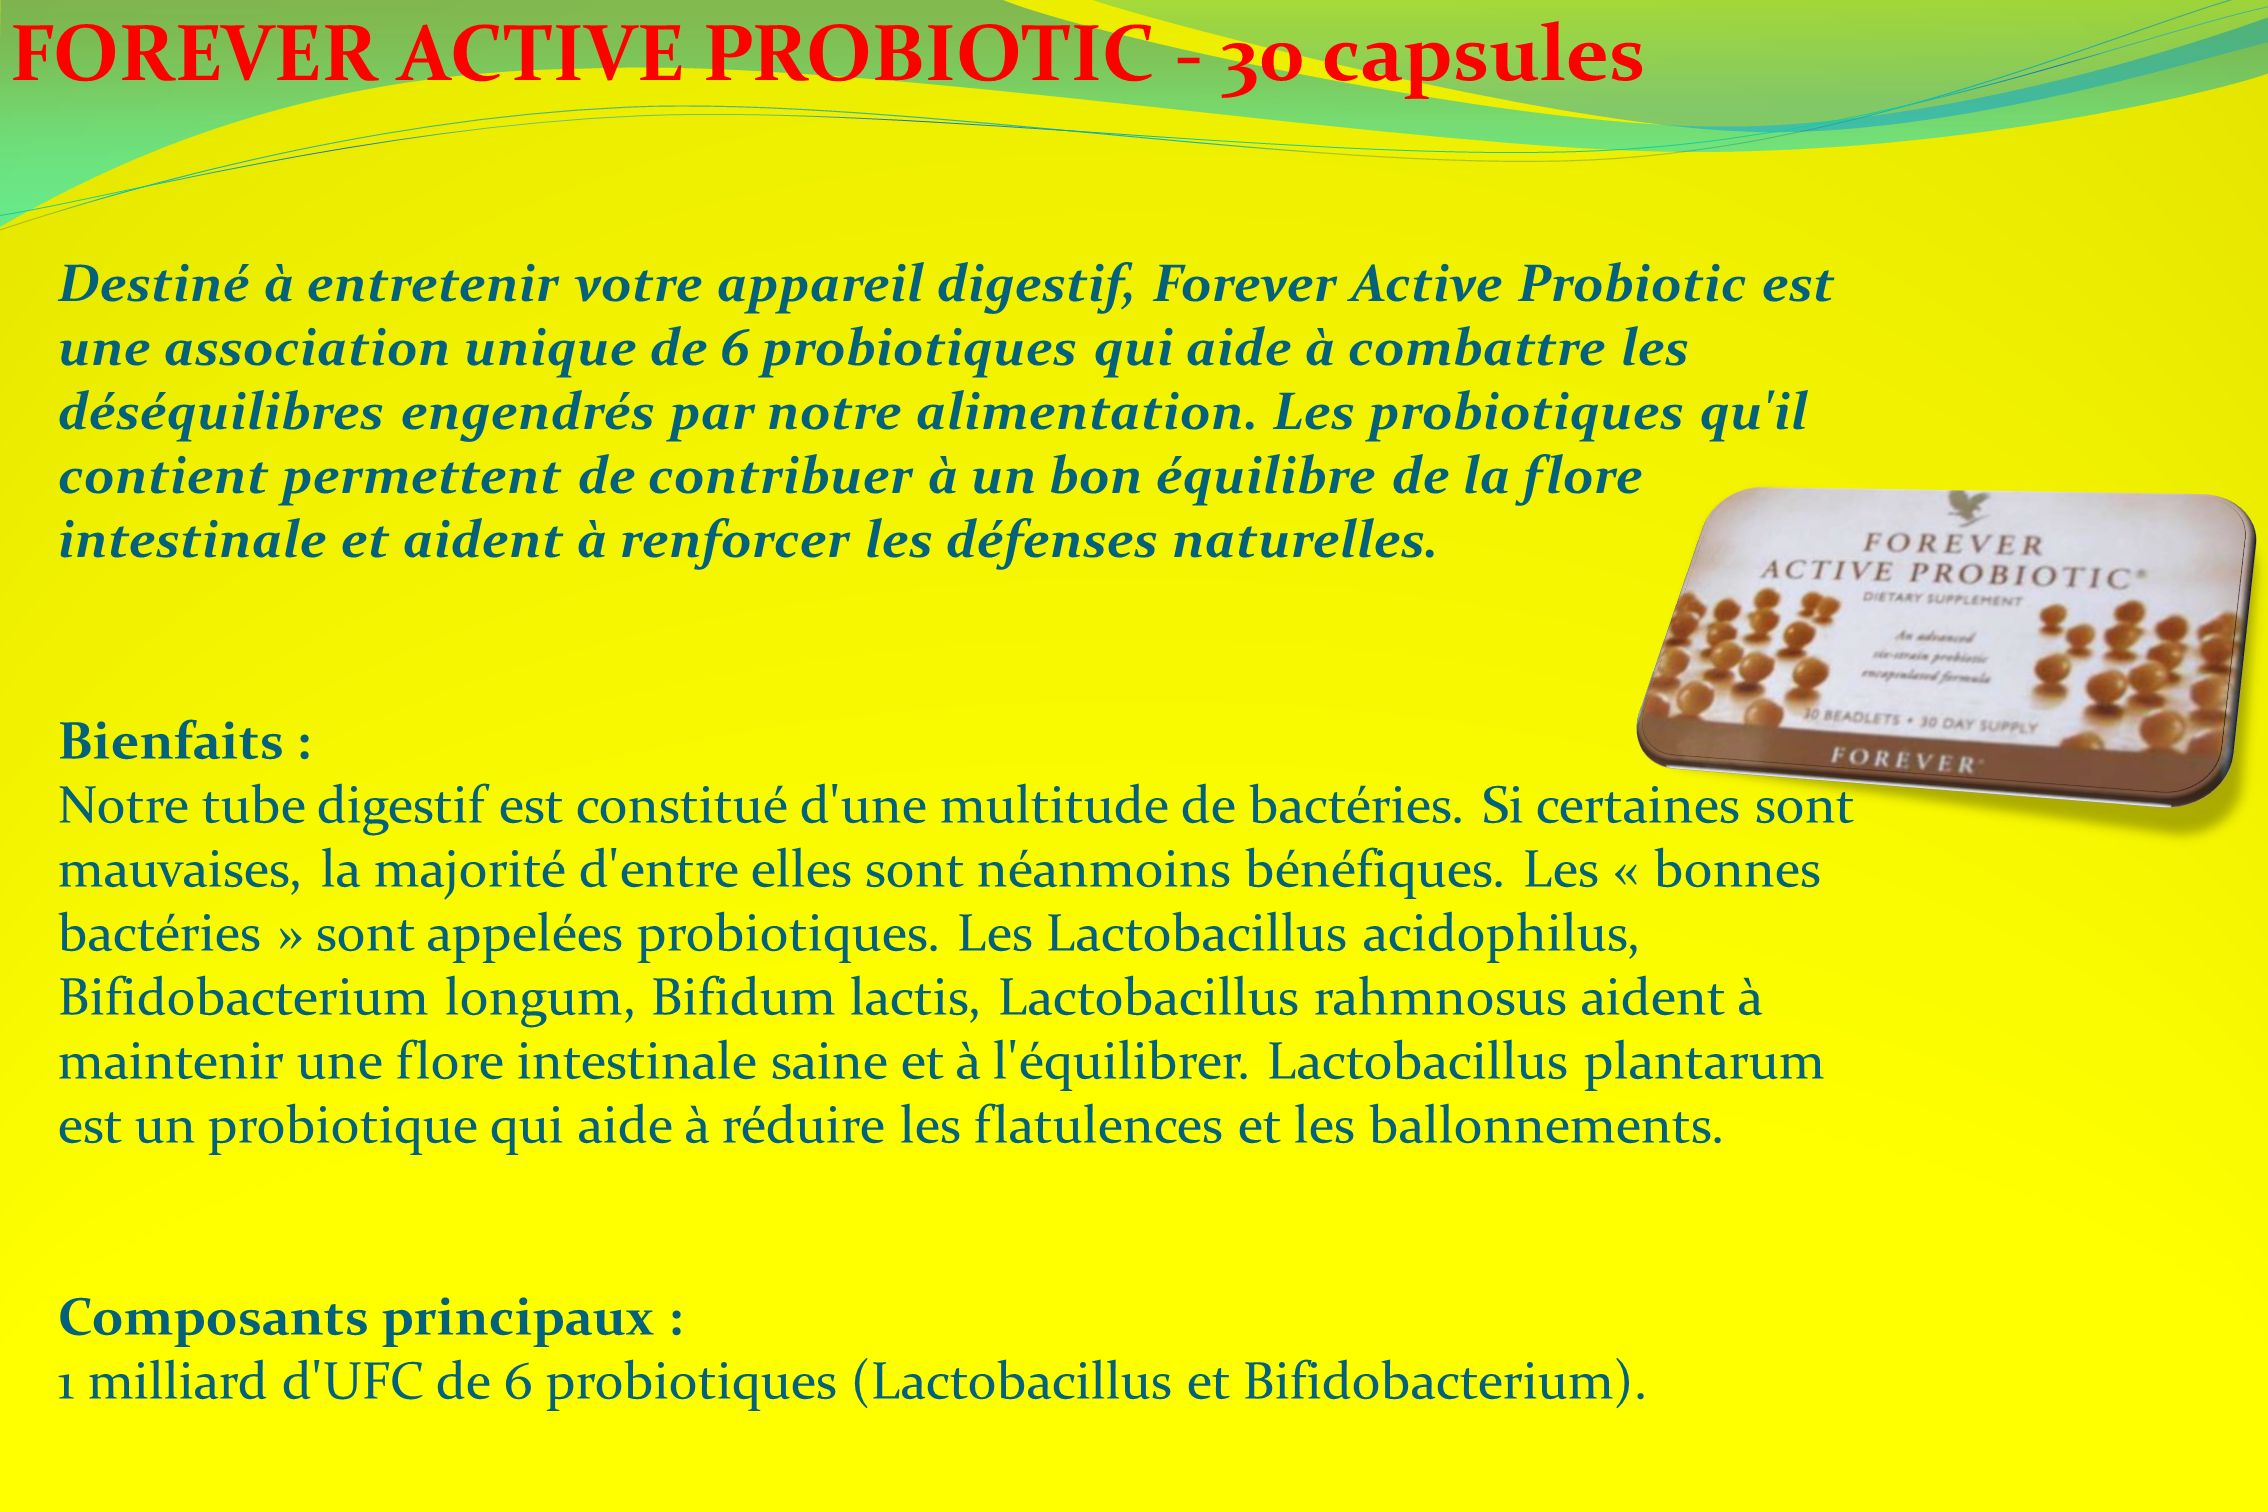 FOREVER ACTIVE PROBIOTIC - 30 capsules